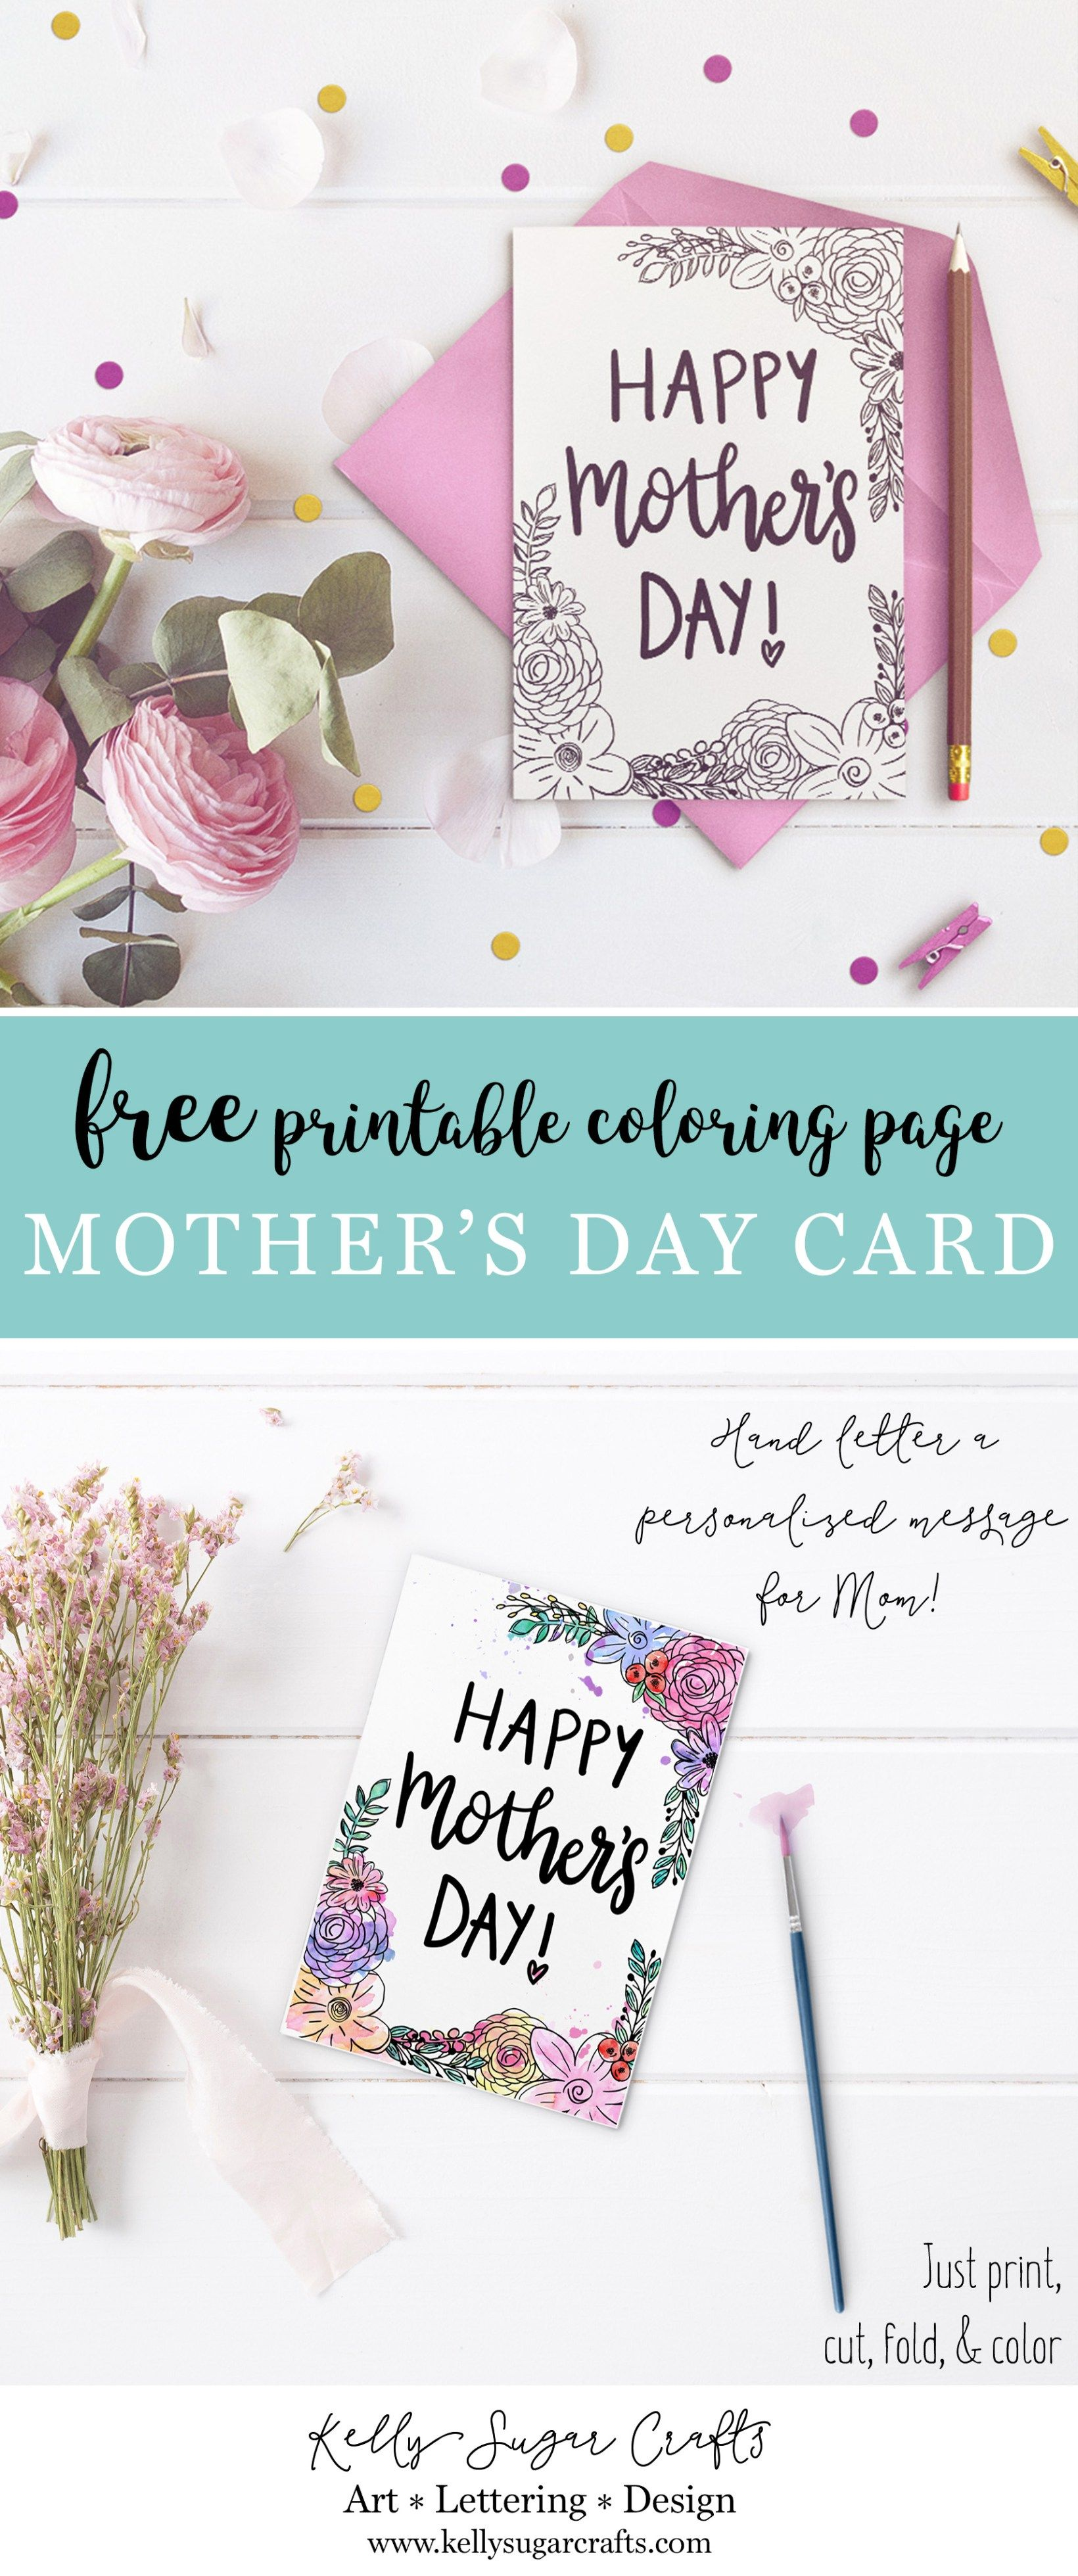 Free printable floral Mother's Day coloring page card by Kelly Sugar Crafts  #mothersdaygift #mothersdaycard #mothersdayprintable #freeprintables  #printables